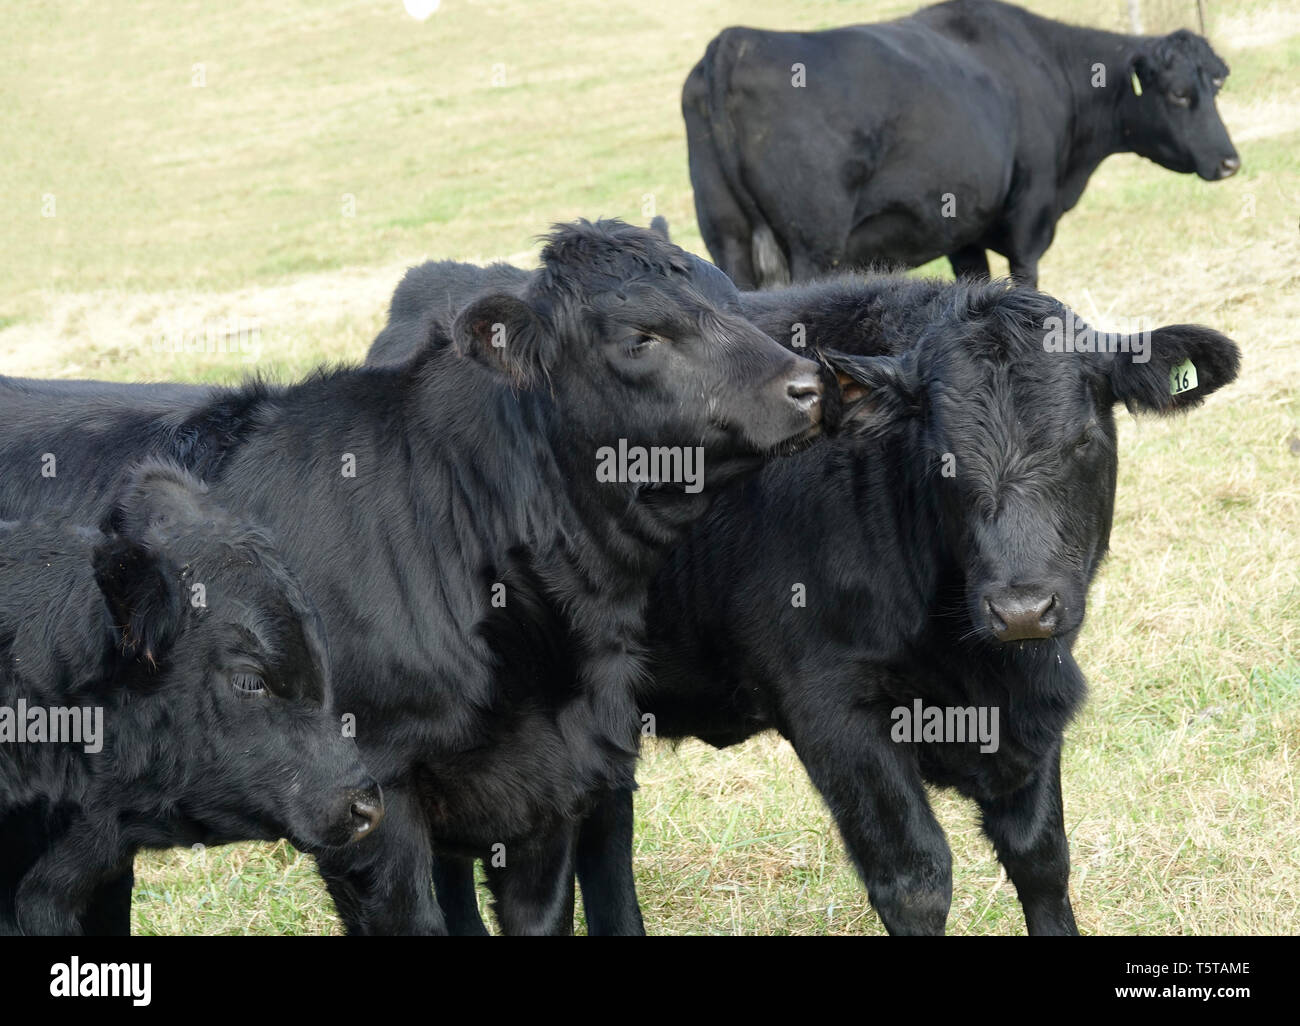 Black Cow Telling Another a Secret Stock Photo